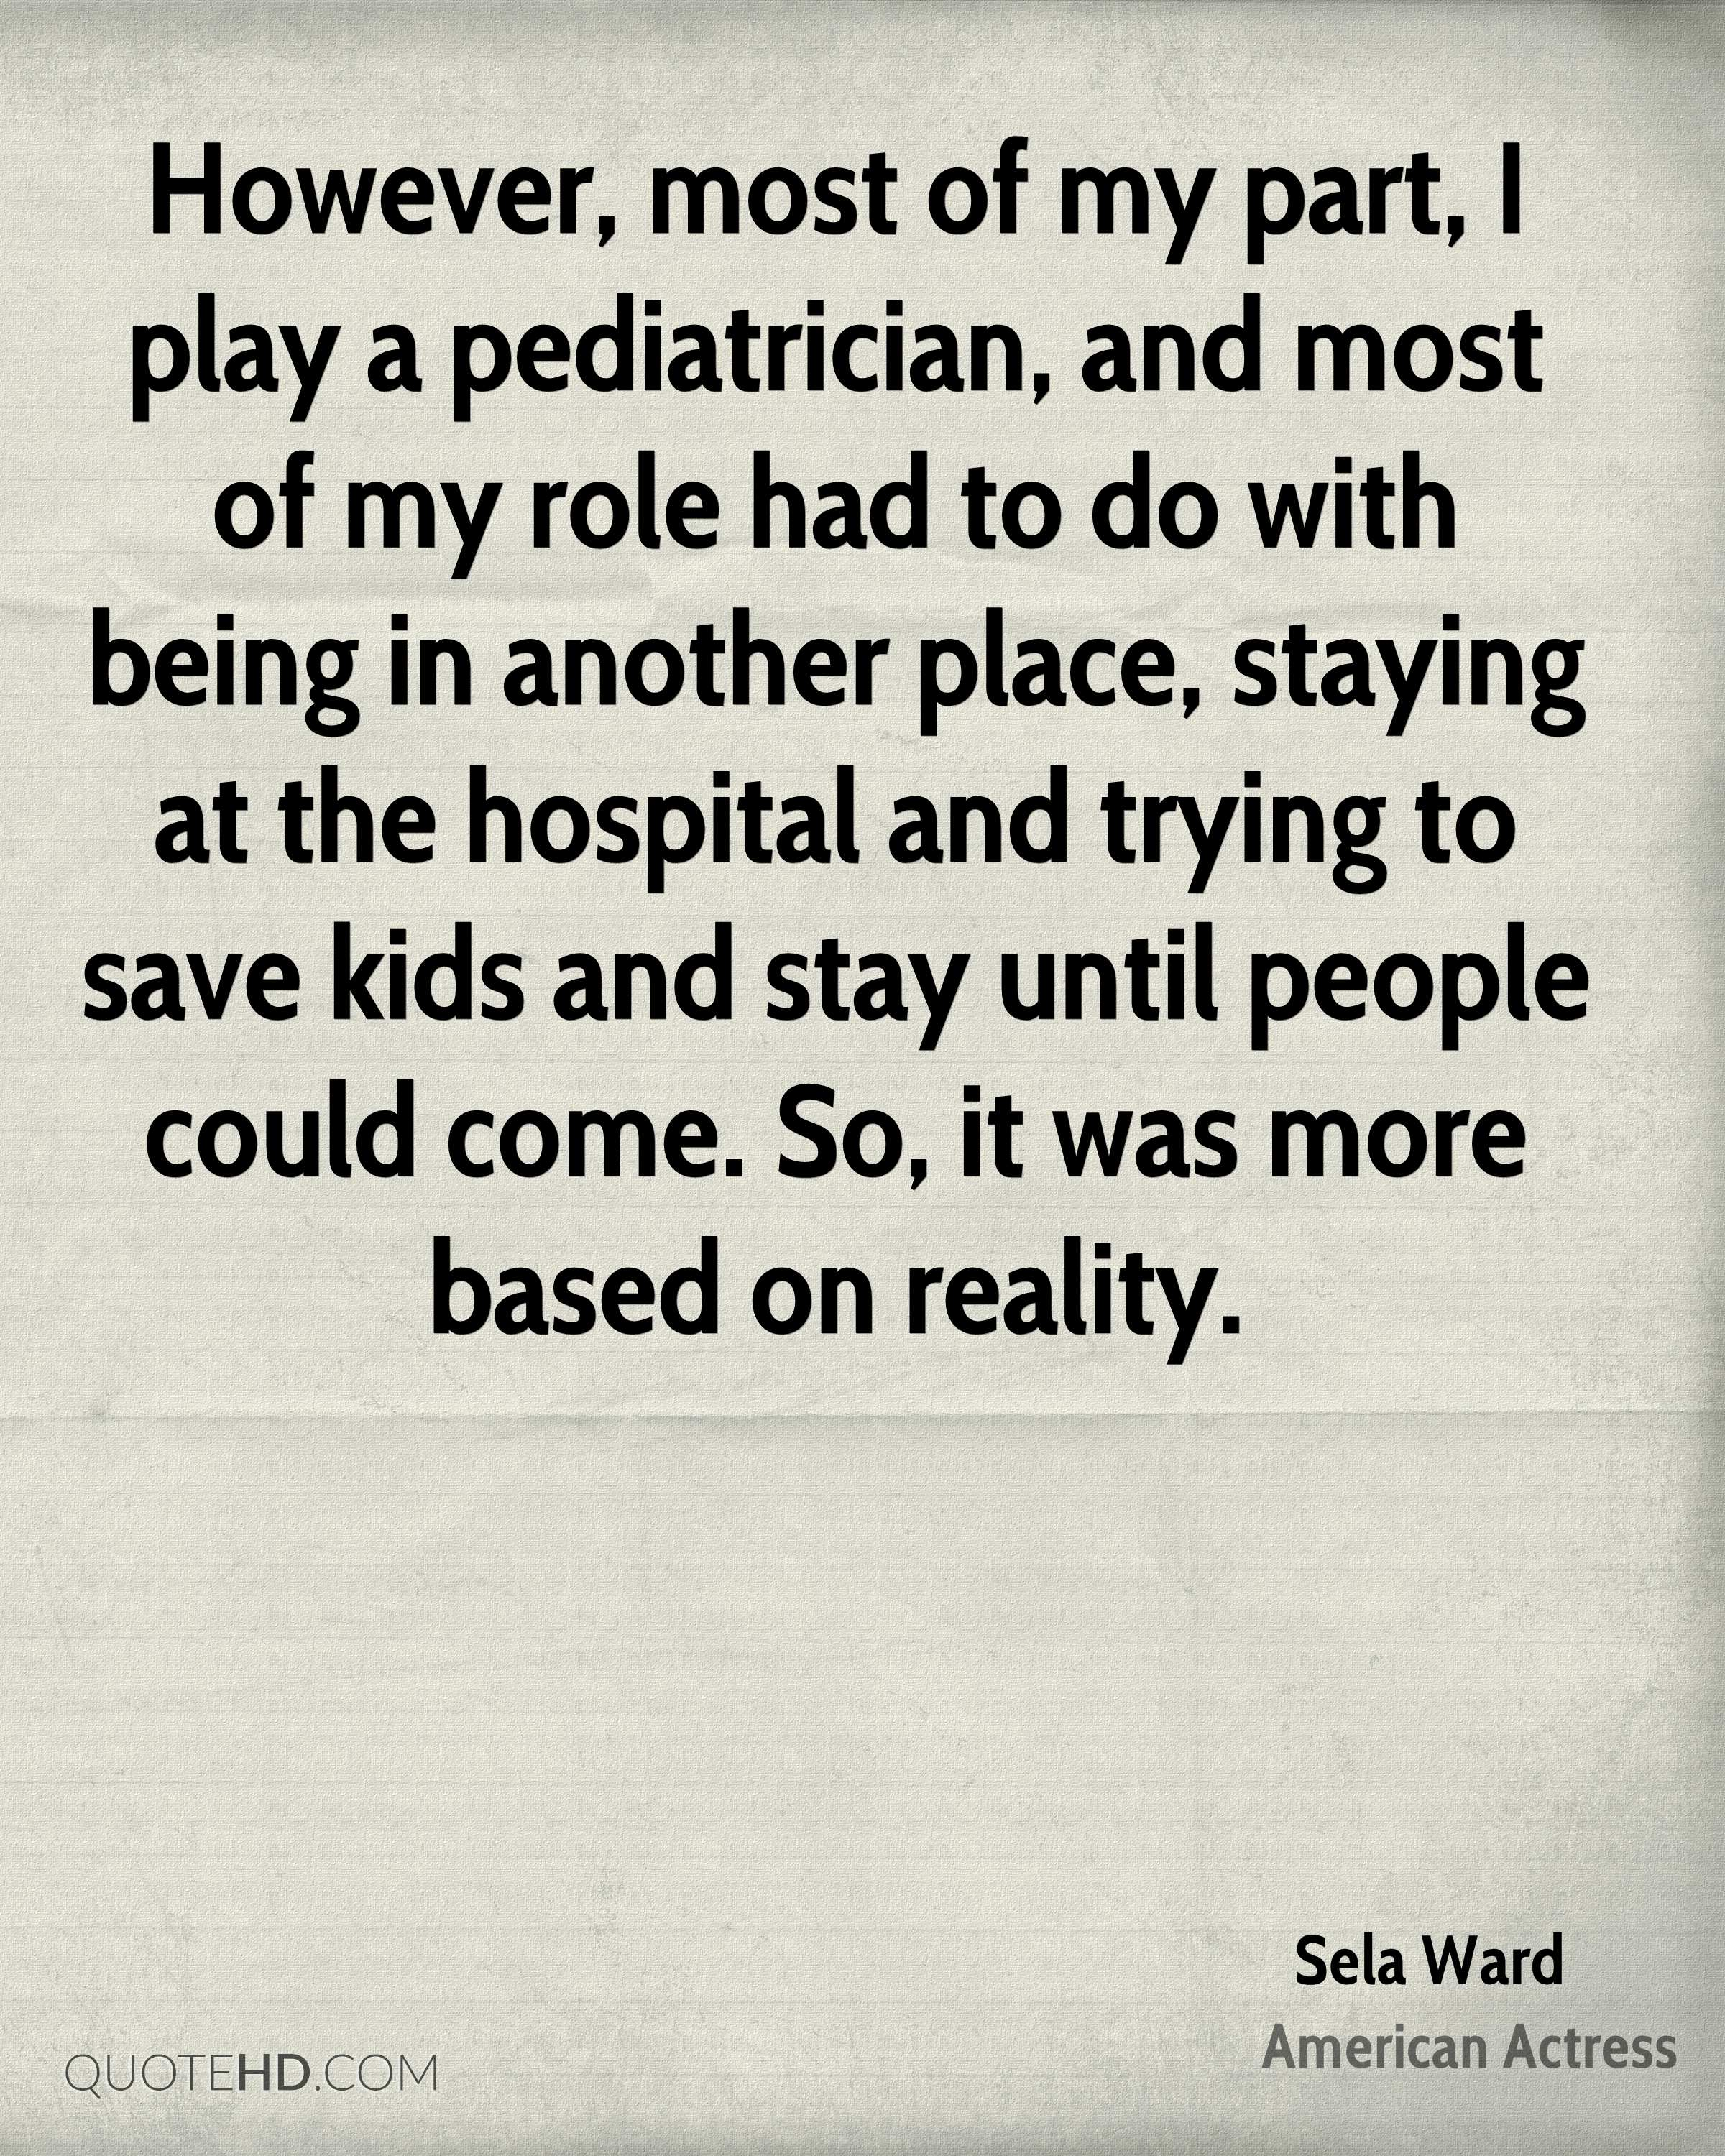 However, most of my part, I play a pediatrician, and most of my role had to do with being in another place, staying at the hospital and trying to save kids and stay until people could come. So, it was more based on reality.